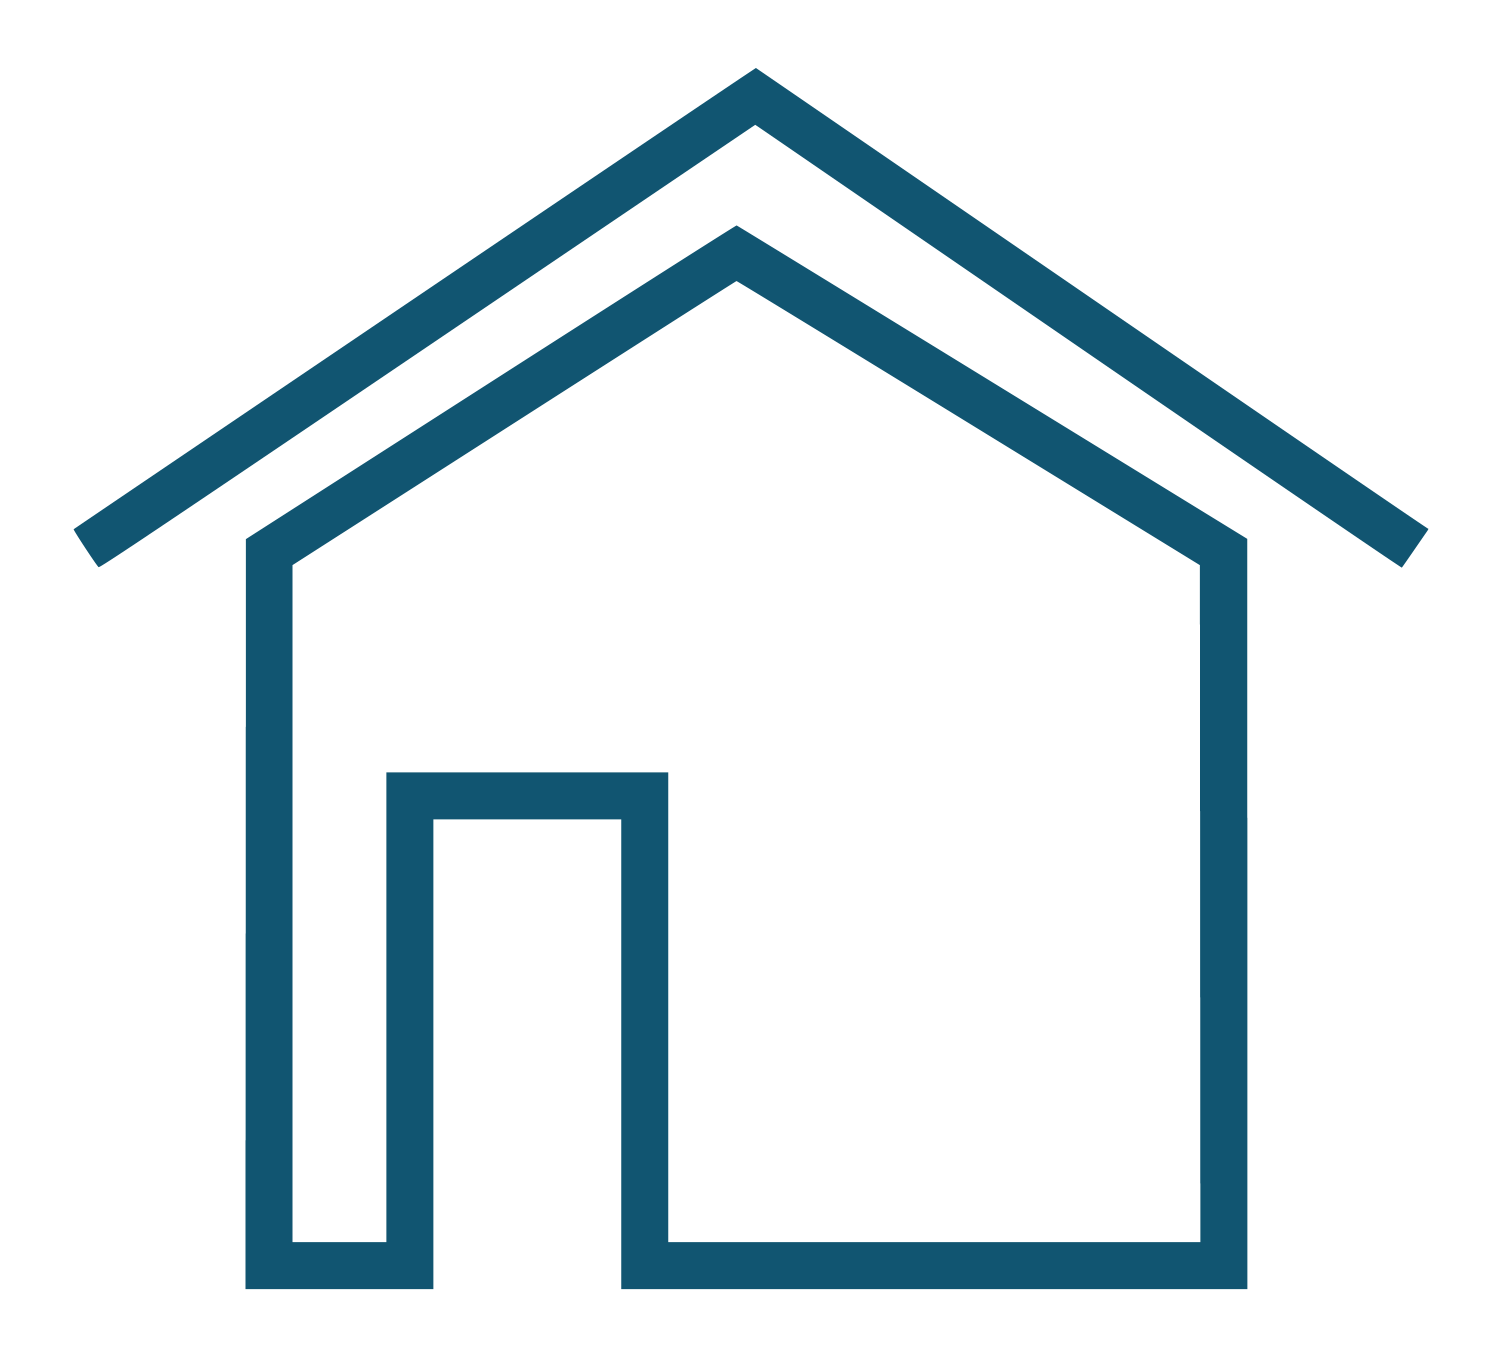 house icon transparent.png